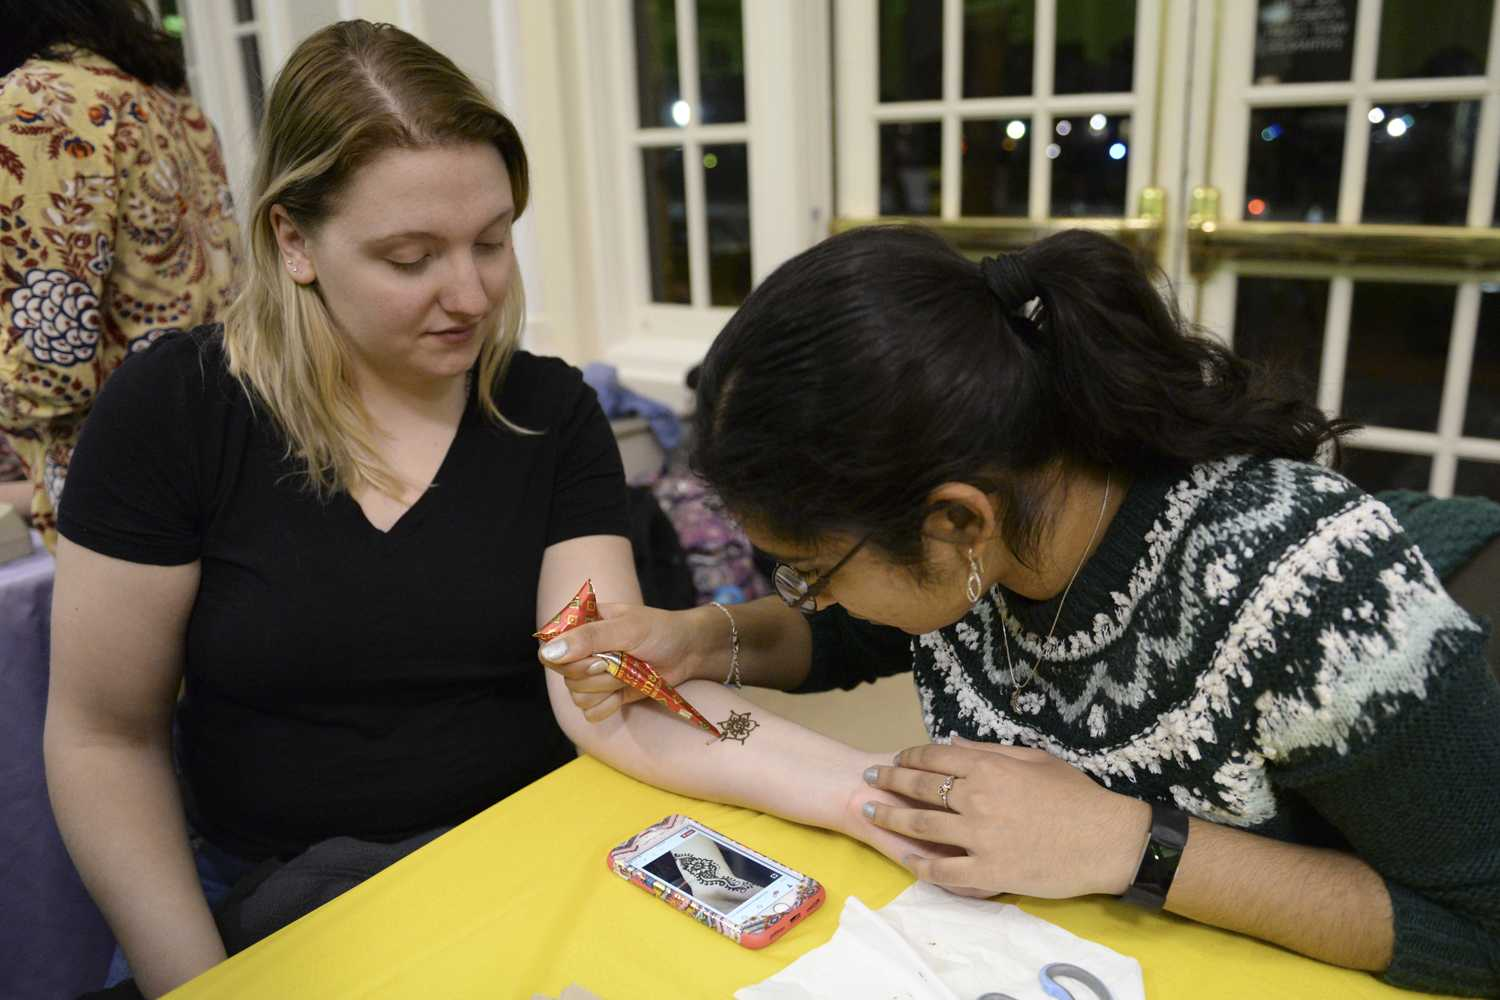 Lauren Kubeja (left), a junior studying civil engineering, receives a henna tattoo from Insiyah Campwala (right), a senior majoring in biology, at the Indian table during the Who Run the World? event Monday night in the William Pitt Union. (Photo by Issi Glatts | Staff Photographer)